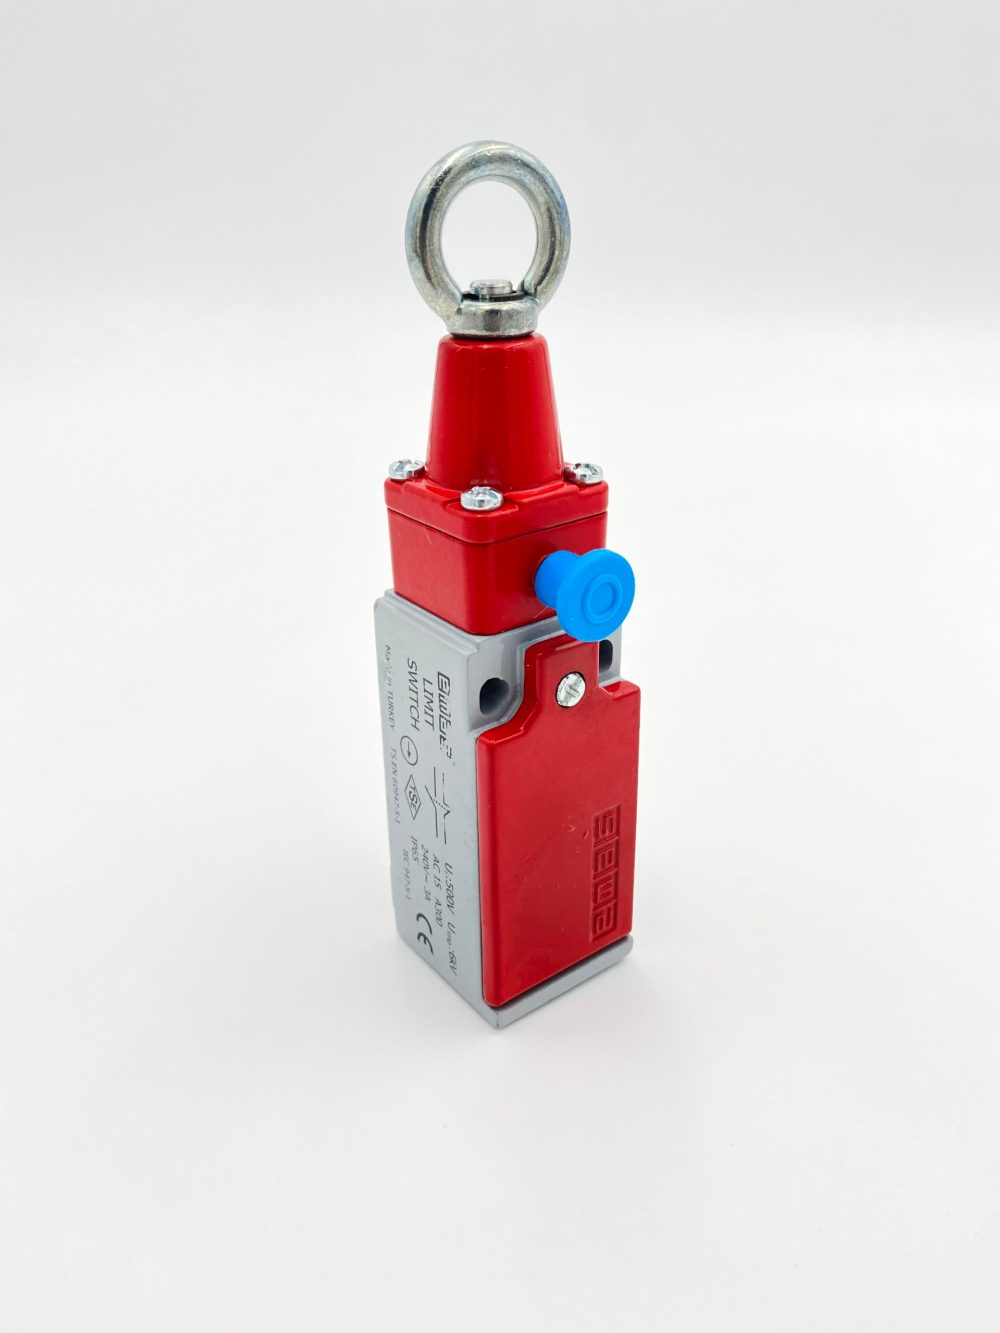 EMAS Limit Switch for Safety Cable for Plate Rolls - LK20K25